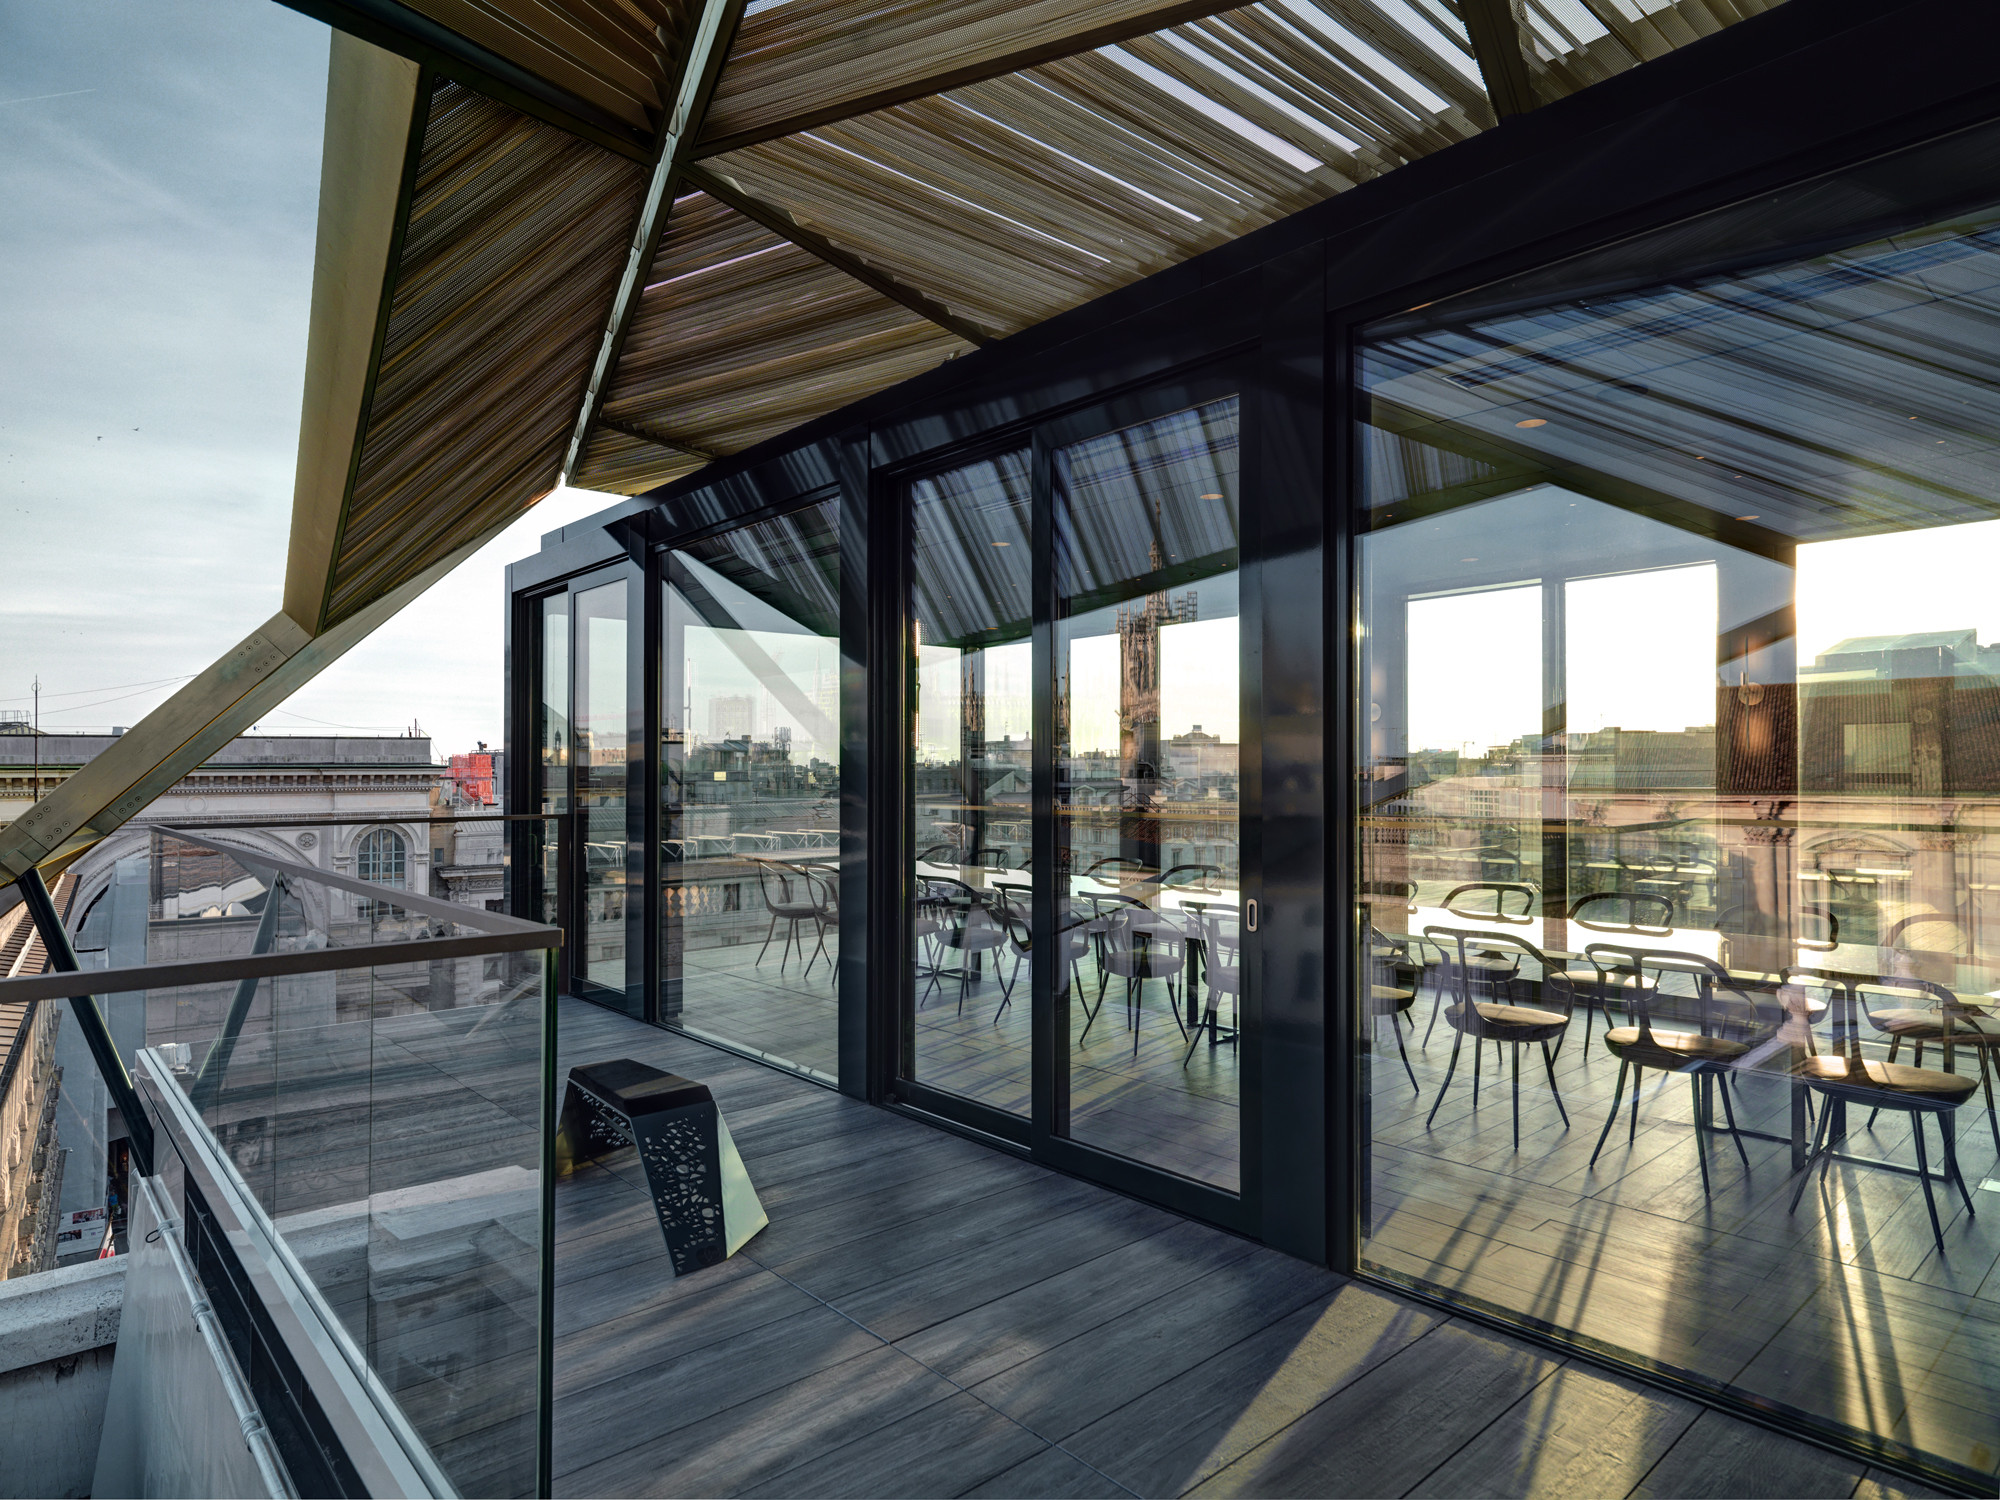 Gallery of priceless milano park associati 6 for Milano rooftop bar